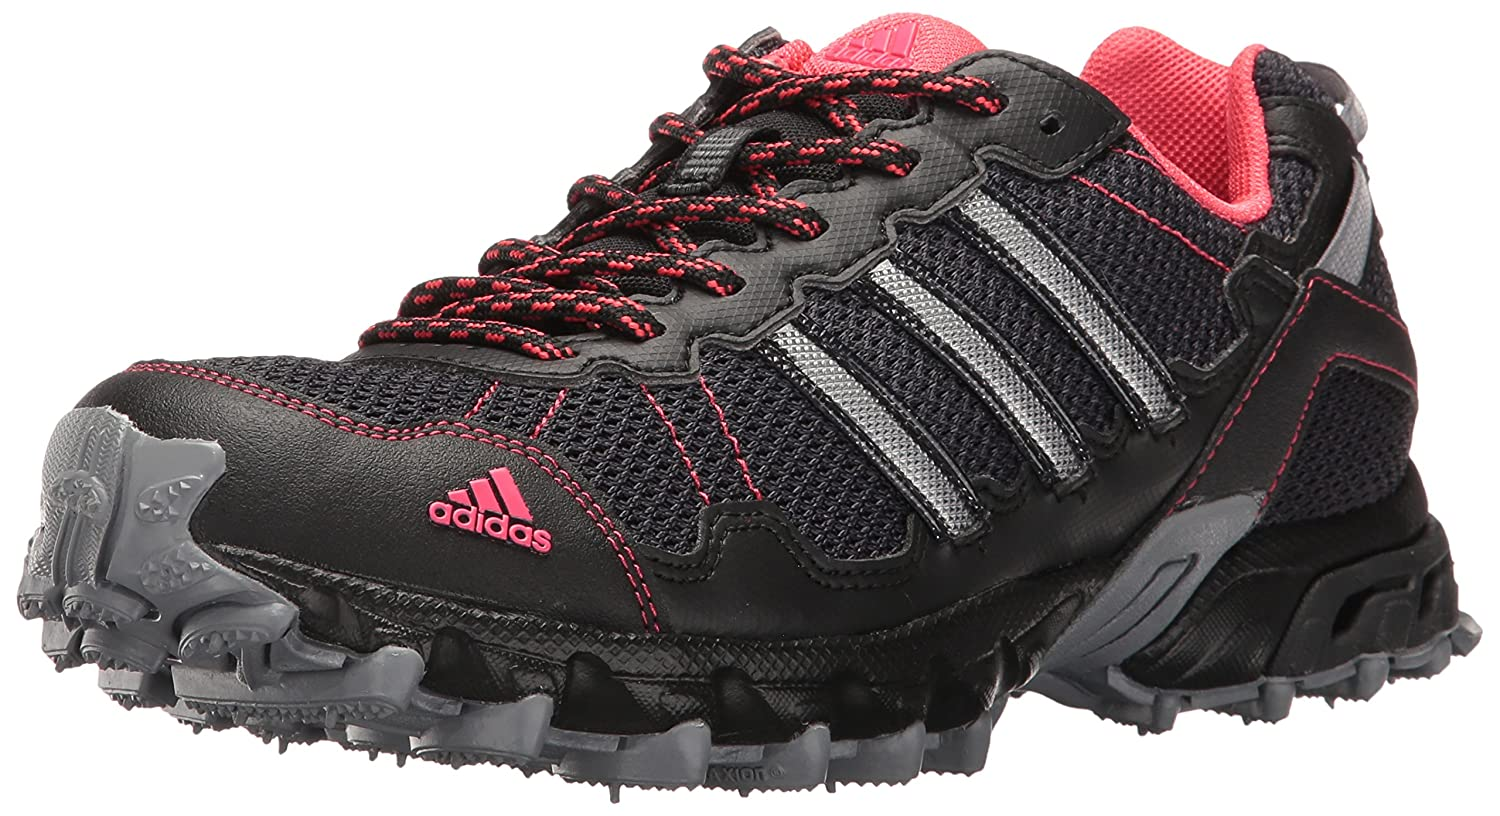 adidas Women's Rockadia W Trail Running Shoe B01H7Z5Y7Y 10.5 B(M) US|Grey/Black/Pink